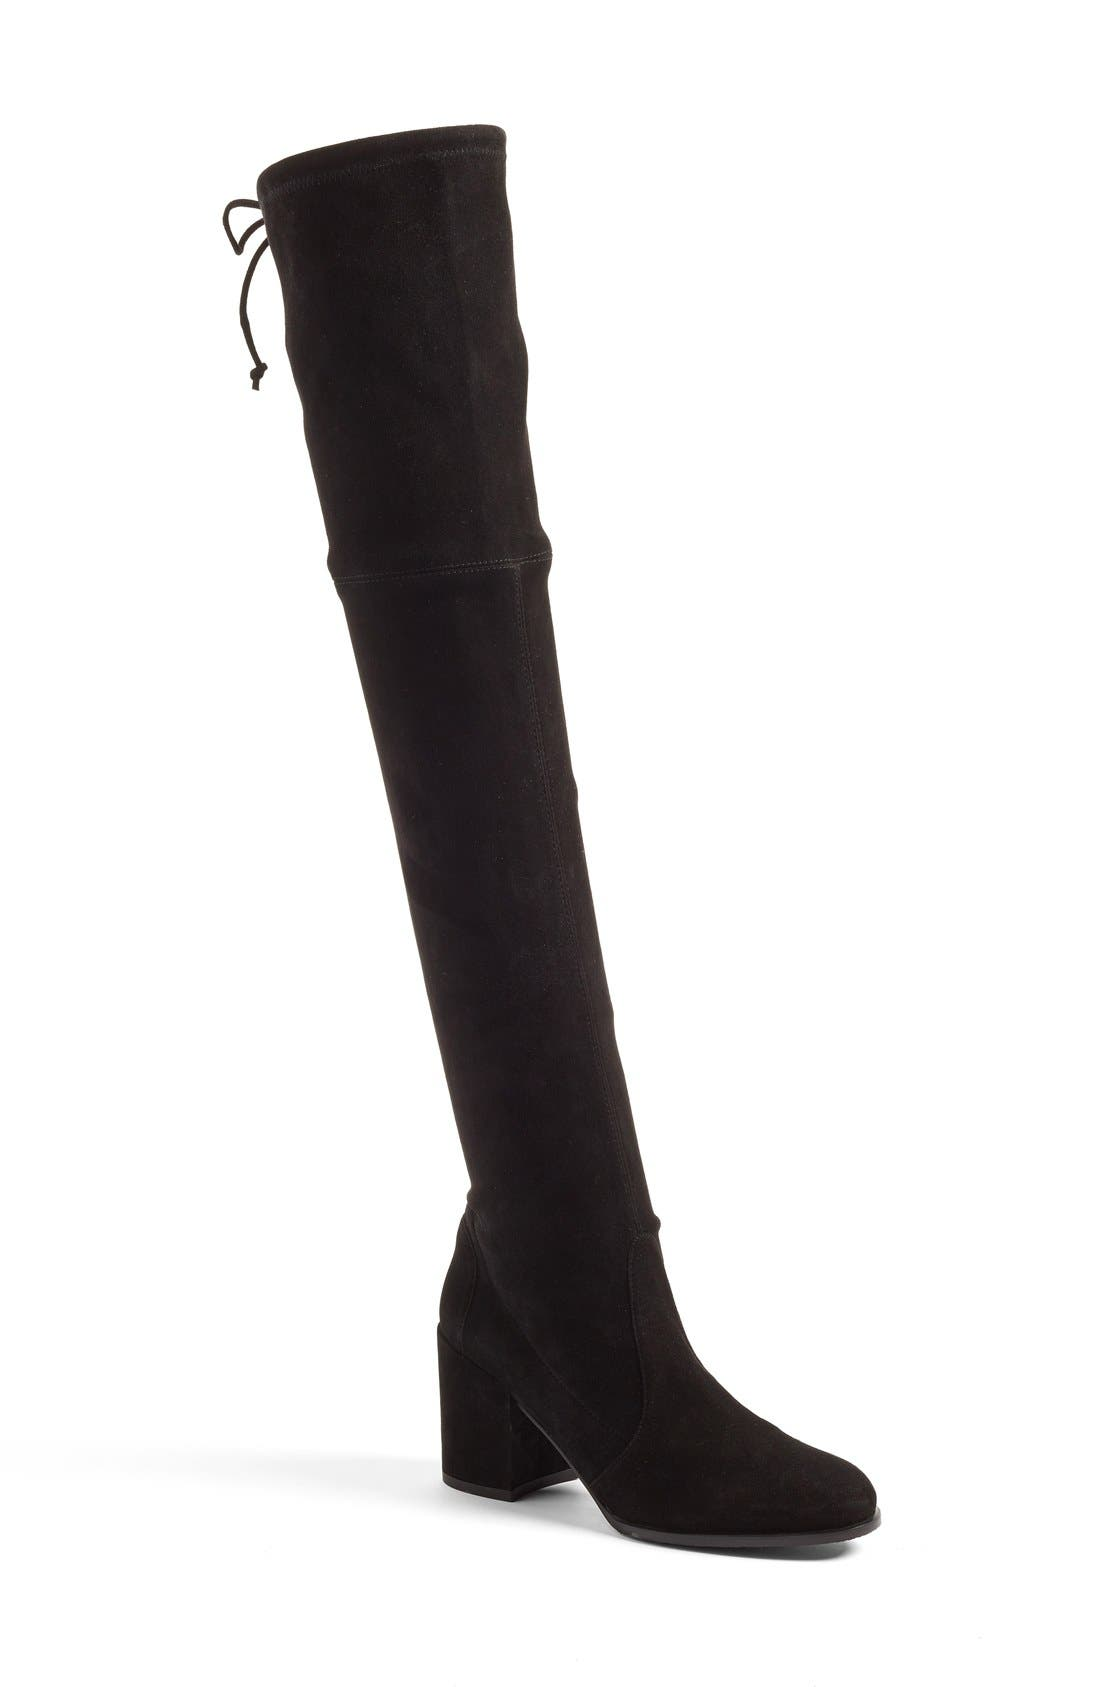 Tieland Over the Knee Boot,                             Main thumbnail 1, color,                             Black Suede